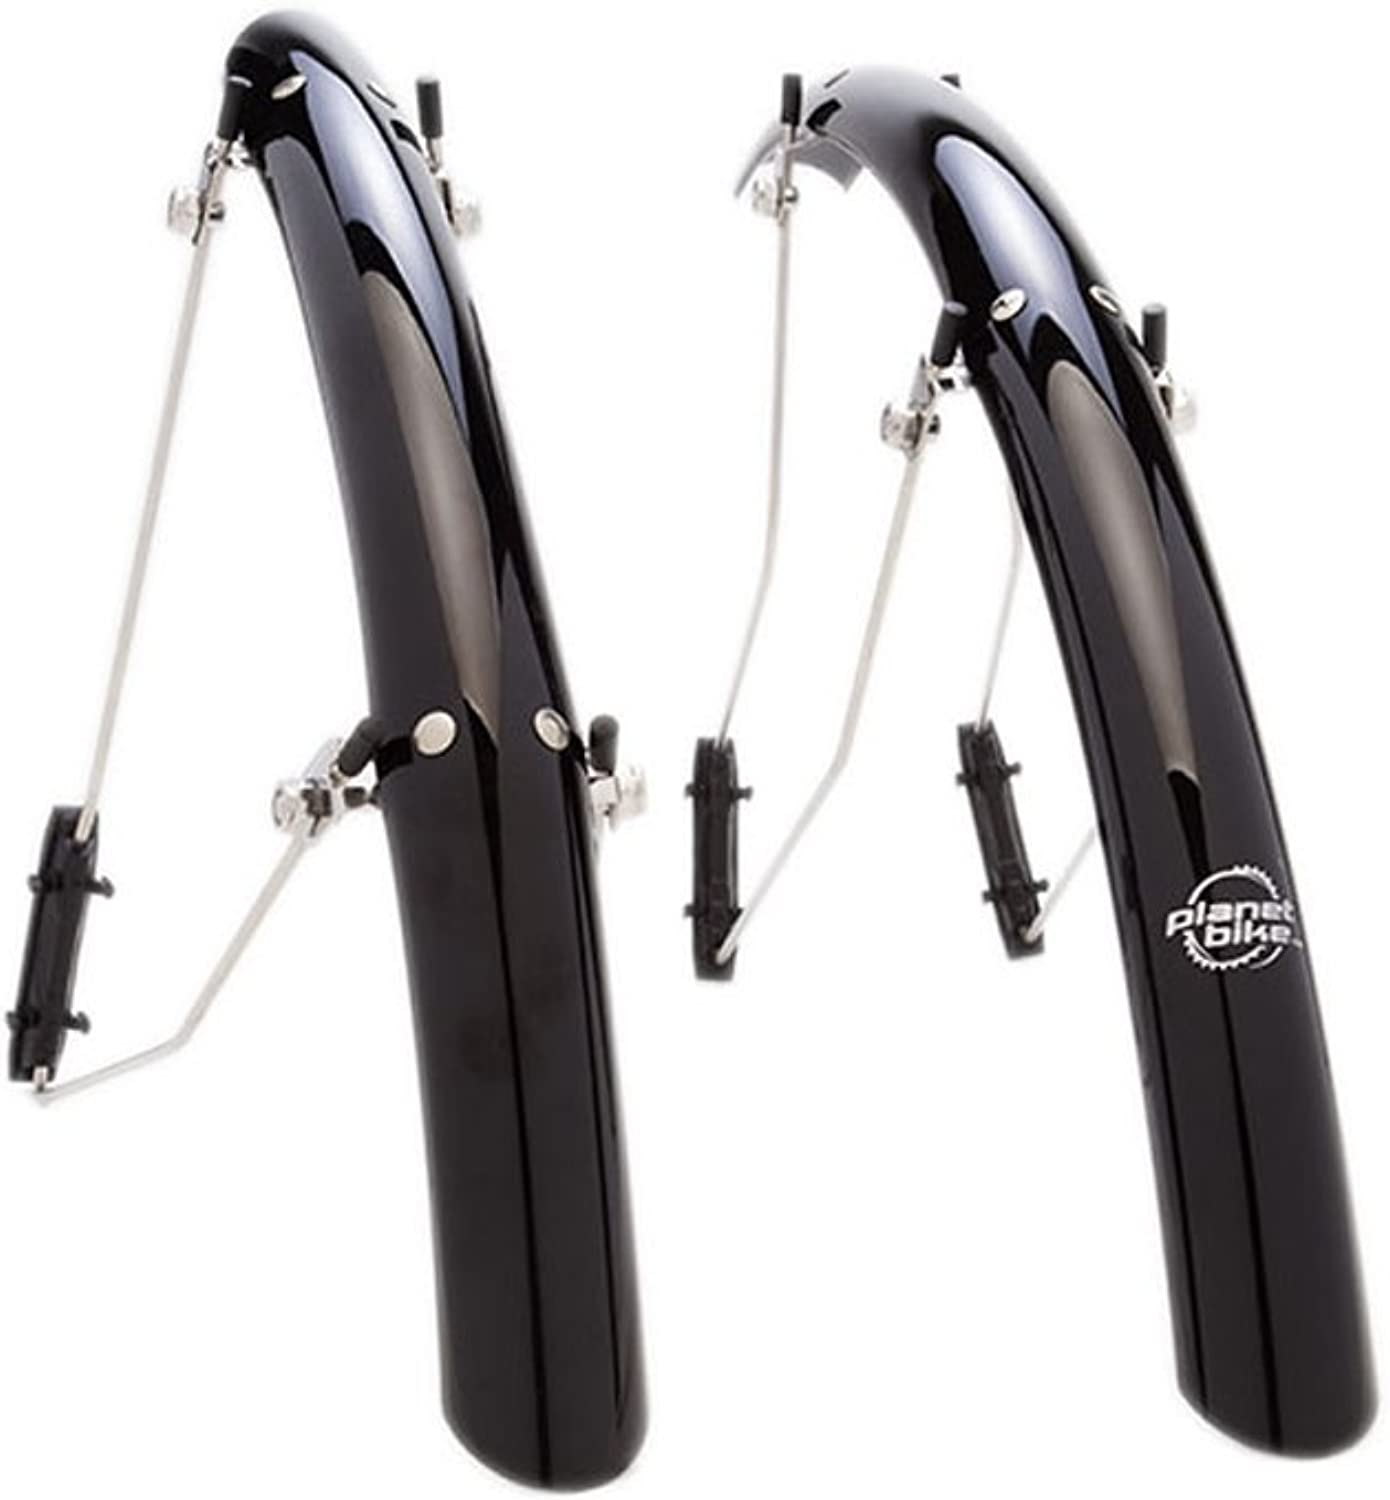 Planet Bike SpeedEZ Road Front and Rear Bicycle Fender Set (Black, 35mm Wide)